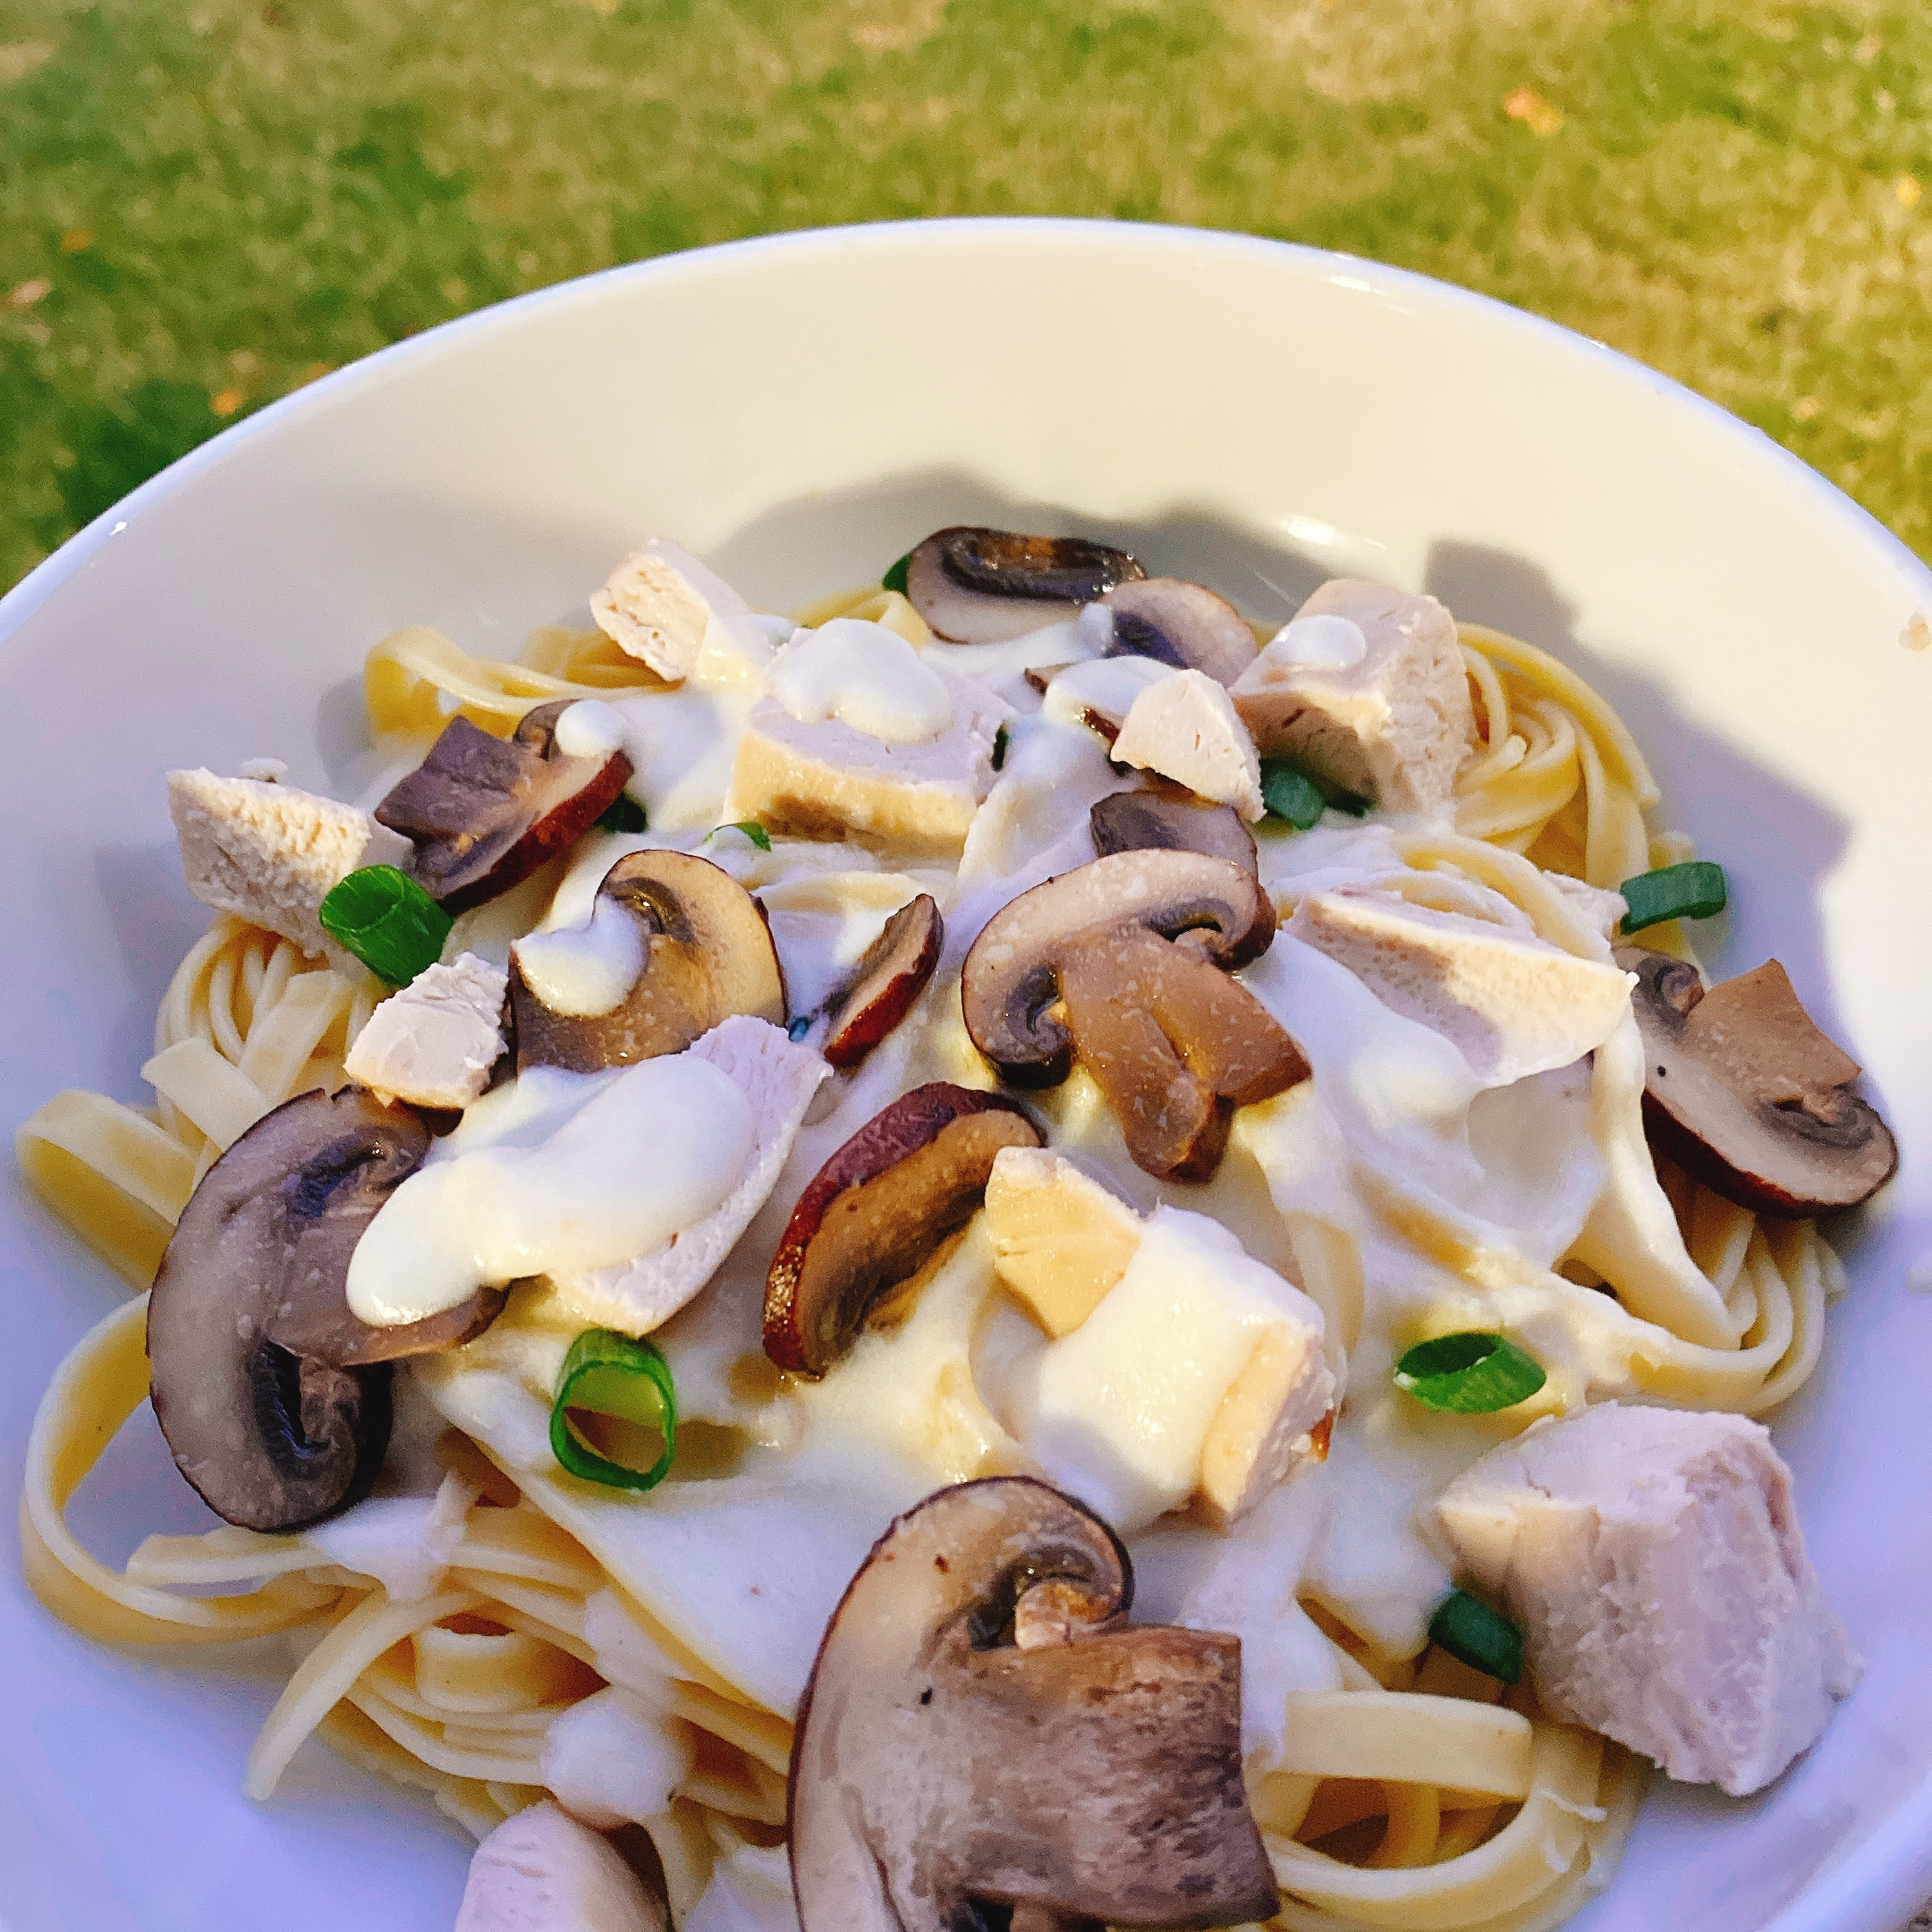 Fettuccine Alfredo with Mushrooms and Chicken